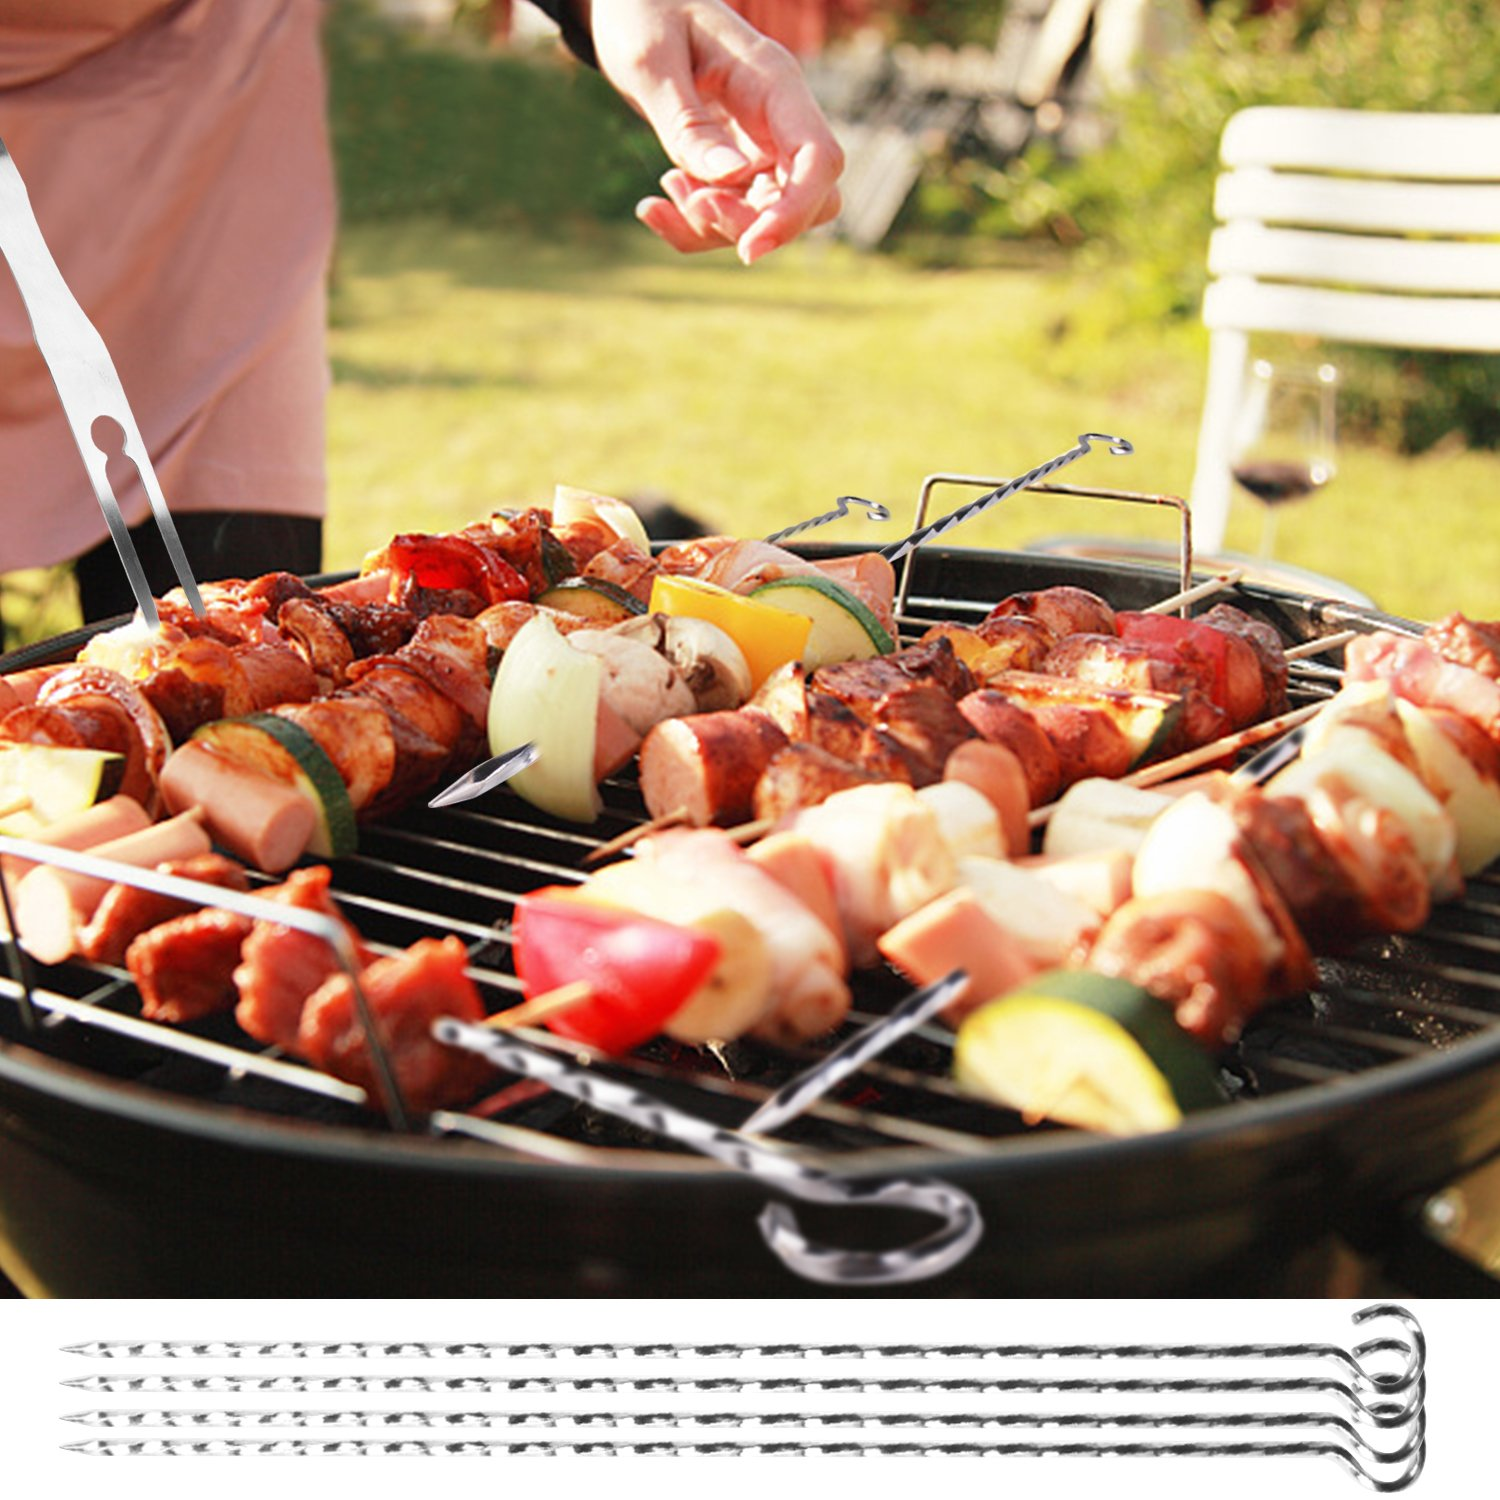 BBQ Tools Set, Morpilot Grill Tools set, Heavy Duty Stainless Steel Barbecue Grilling Utensils, Premium Grilling Accessories for Barbecue - 4 In1 Spatula, Tongs, Forks, and Basting Brush